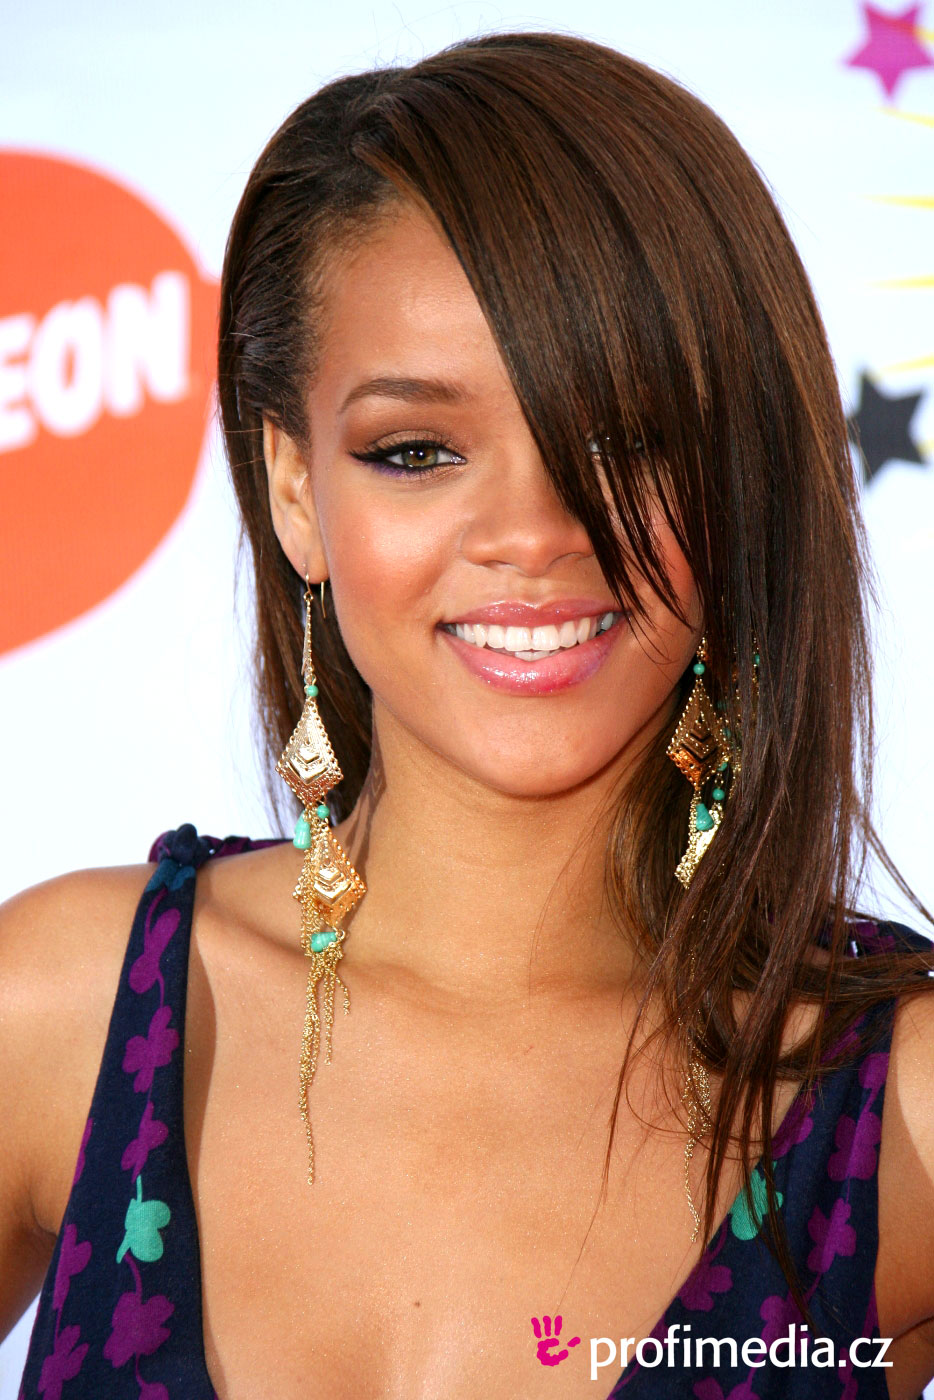 Rihanna Hairstyles Image Gallery, Long Hairstyle 2011, Hairstyle 2011, New Long Hairstyle 2011, Celebrity Long Hairstyles 2031